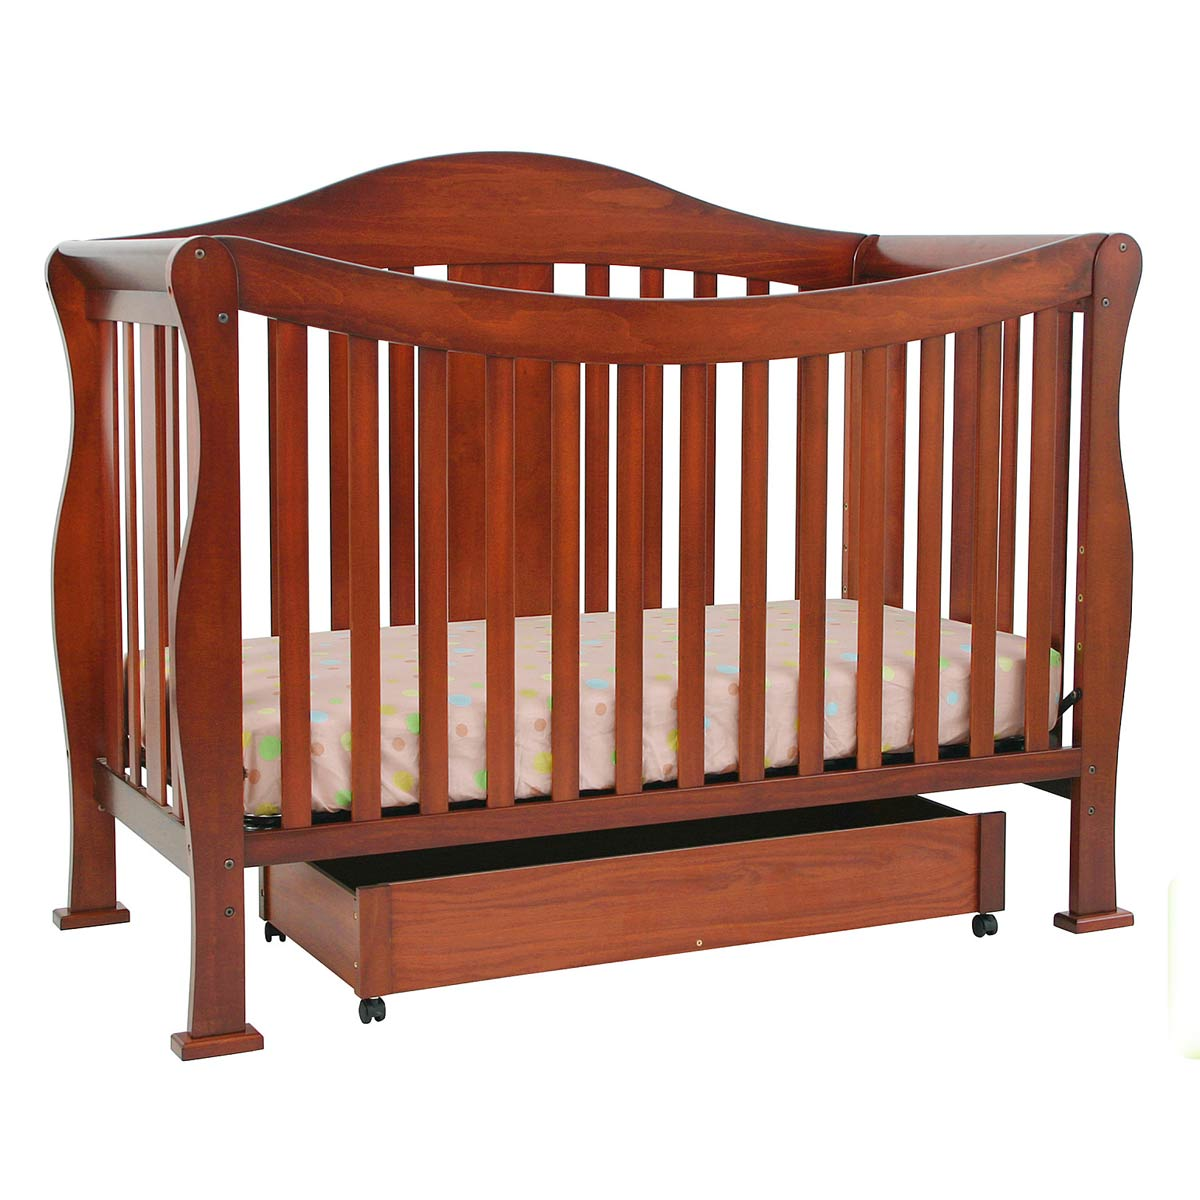 DaVinci Parker 4 In 1 Convertible Crib In Cherry K5101C FREE SHIPPING